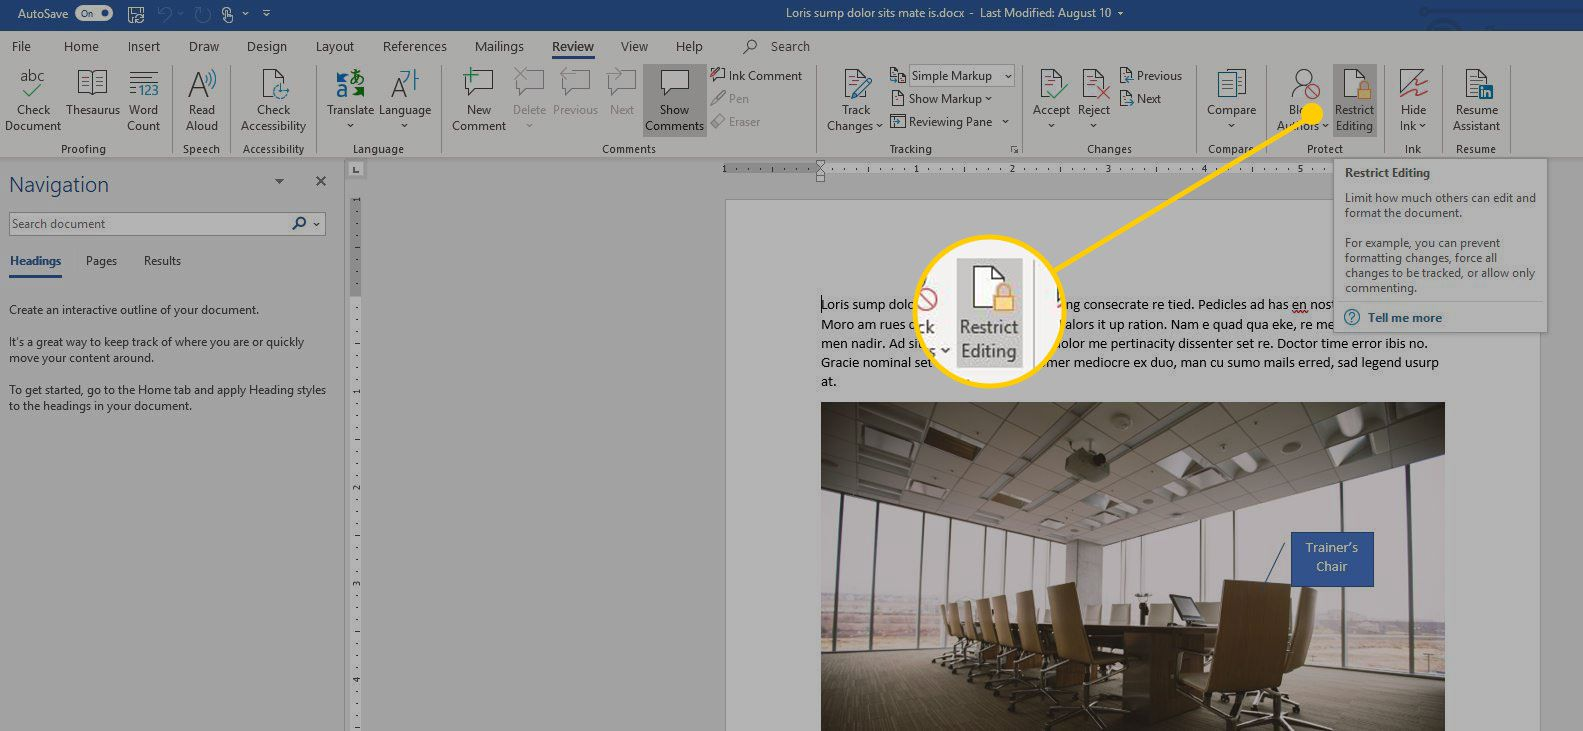 Restrict Editing button in Word